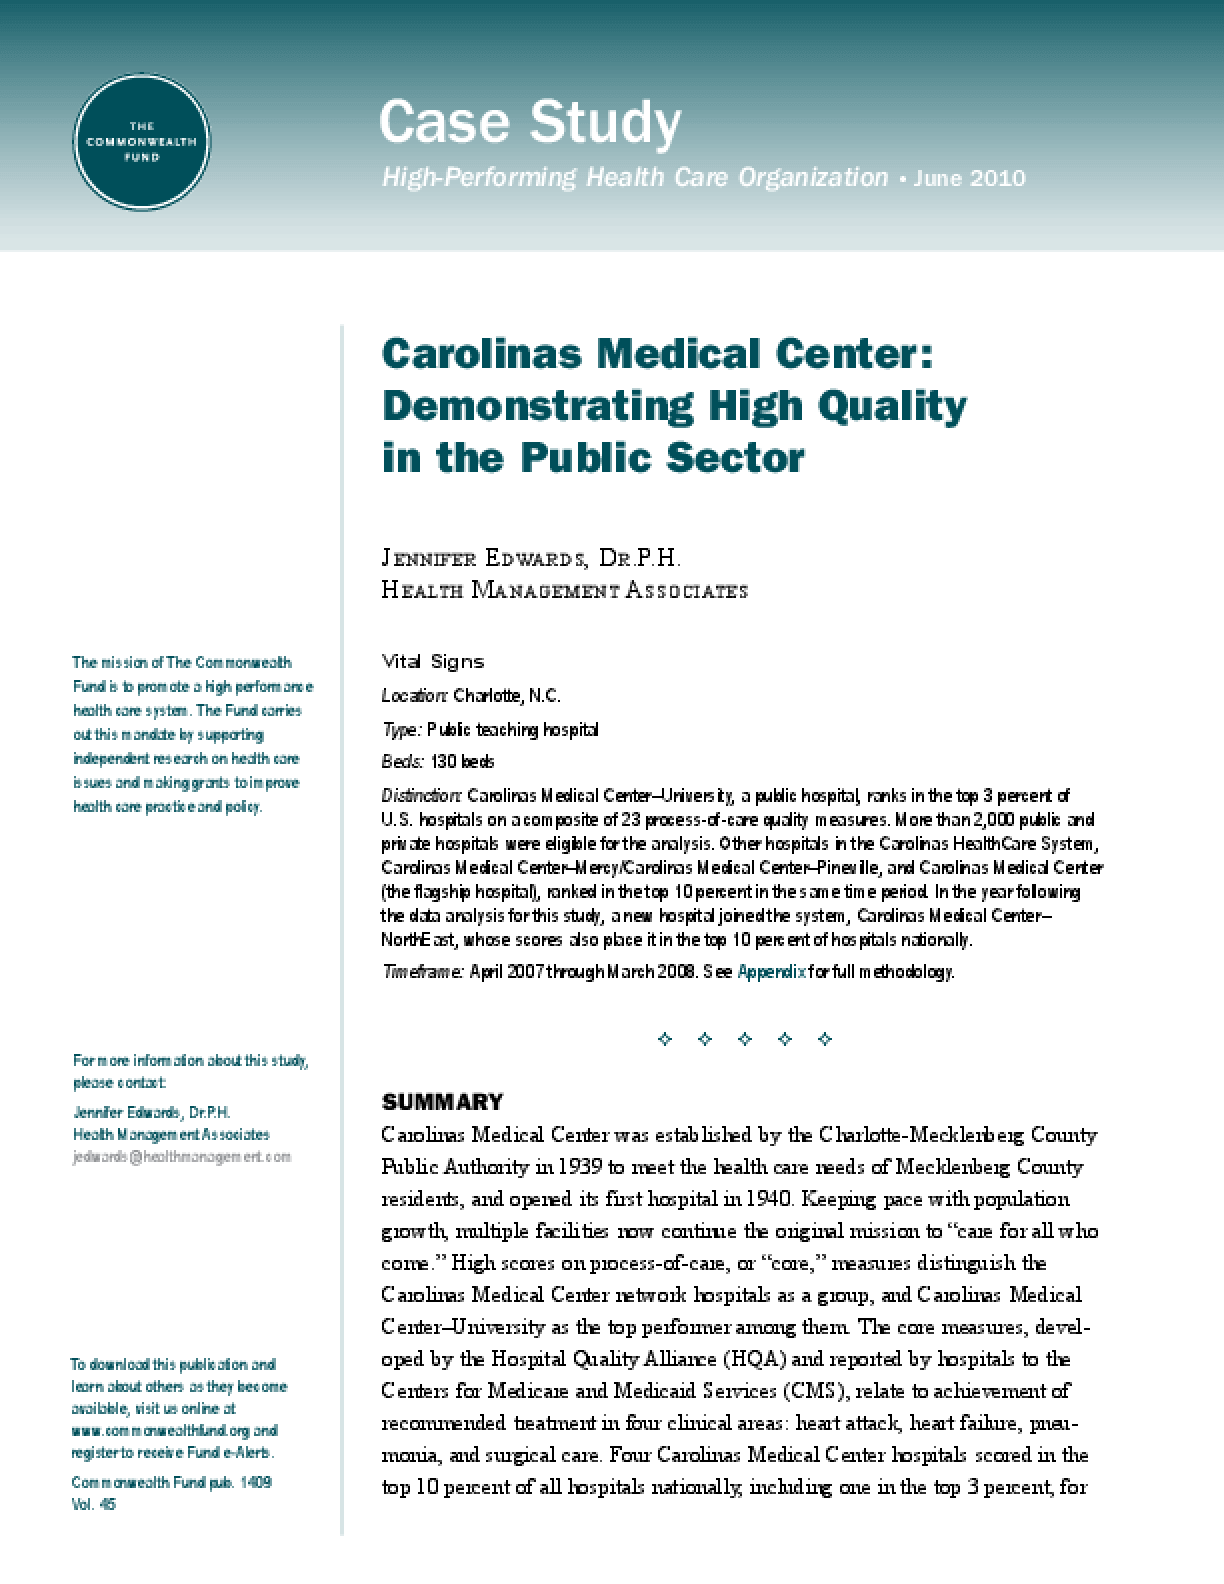 Carolinas Medical Center: Demonstrating High Quality in the Public Sector